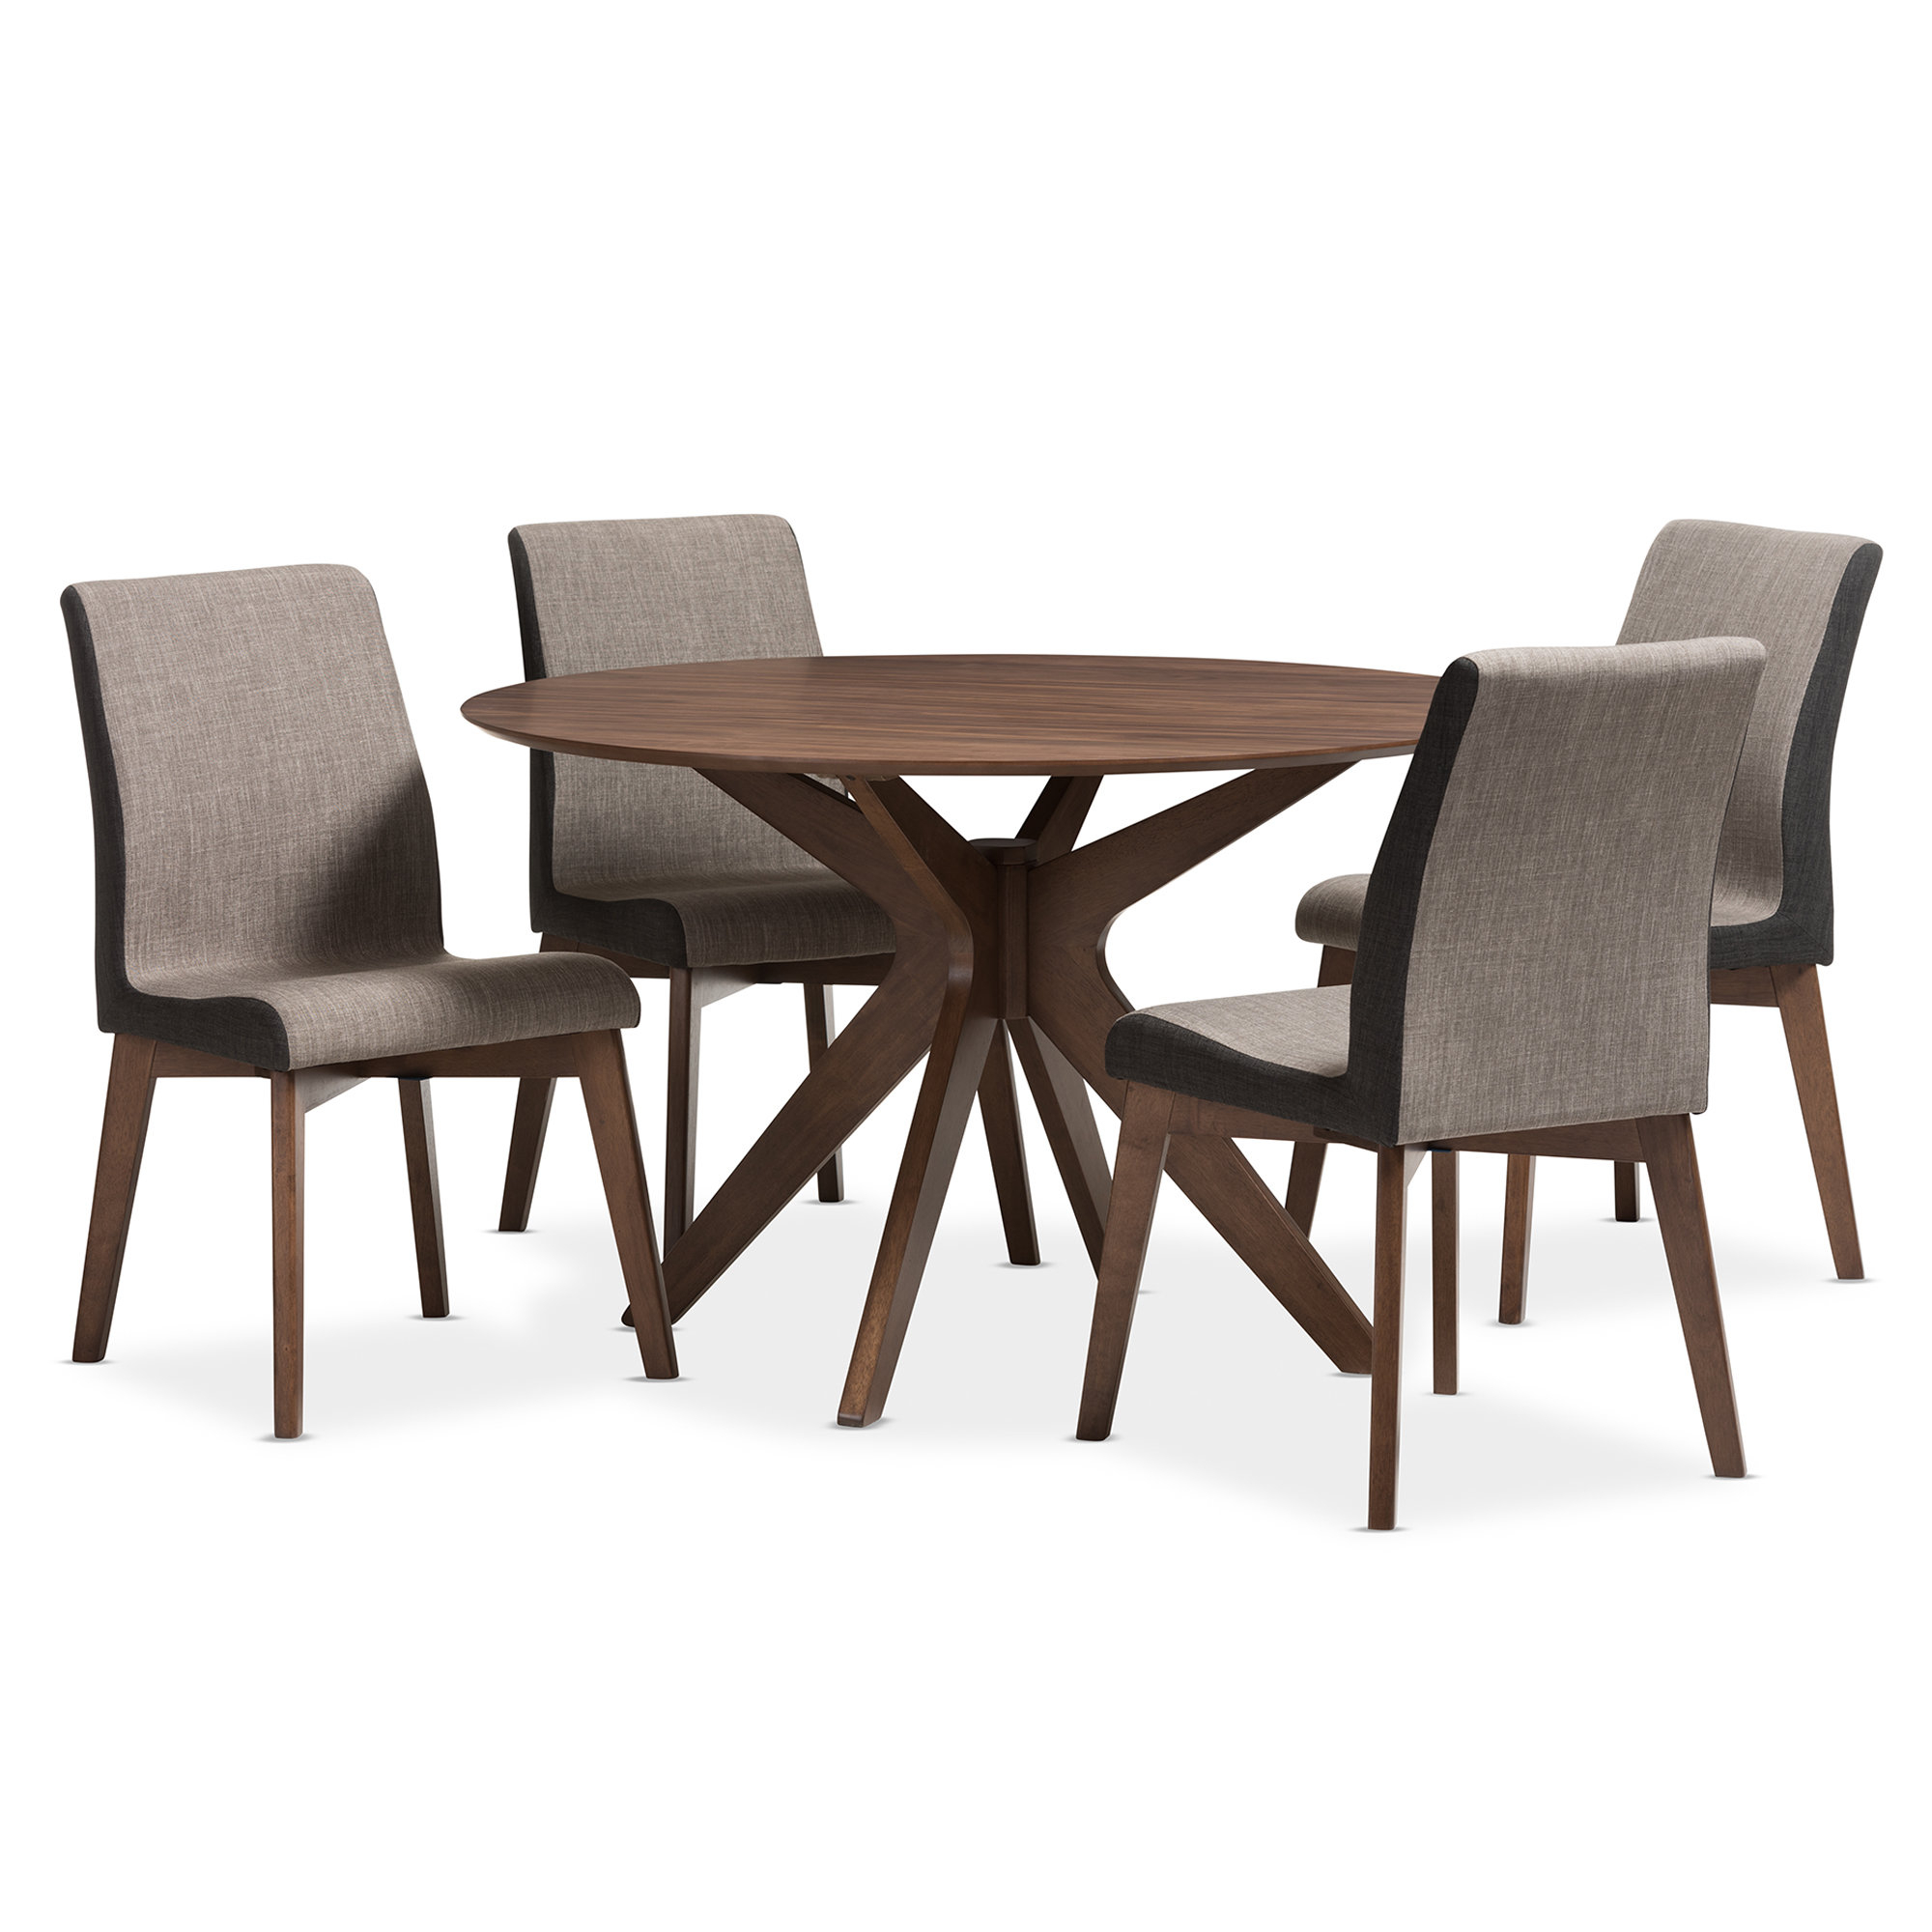 Allmodern With Regard To Evellen 5 Piece Solid Wood Dining Sets (Set Of 5) (View 2 of 25)